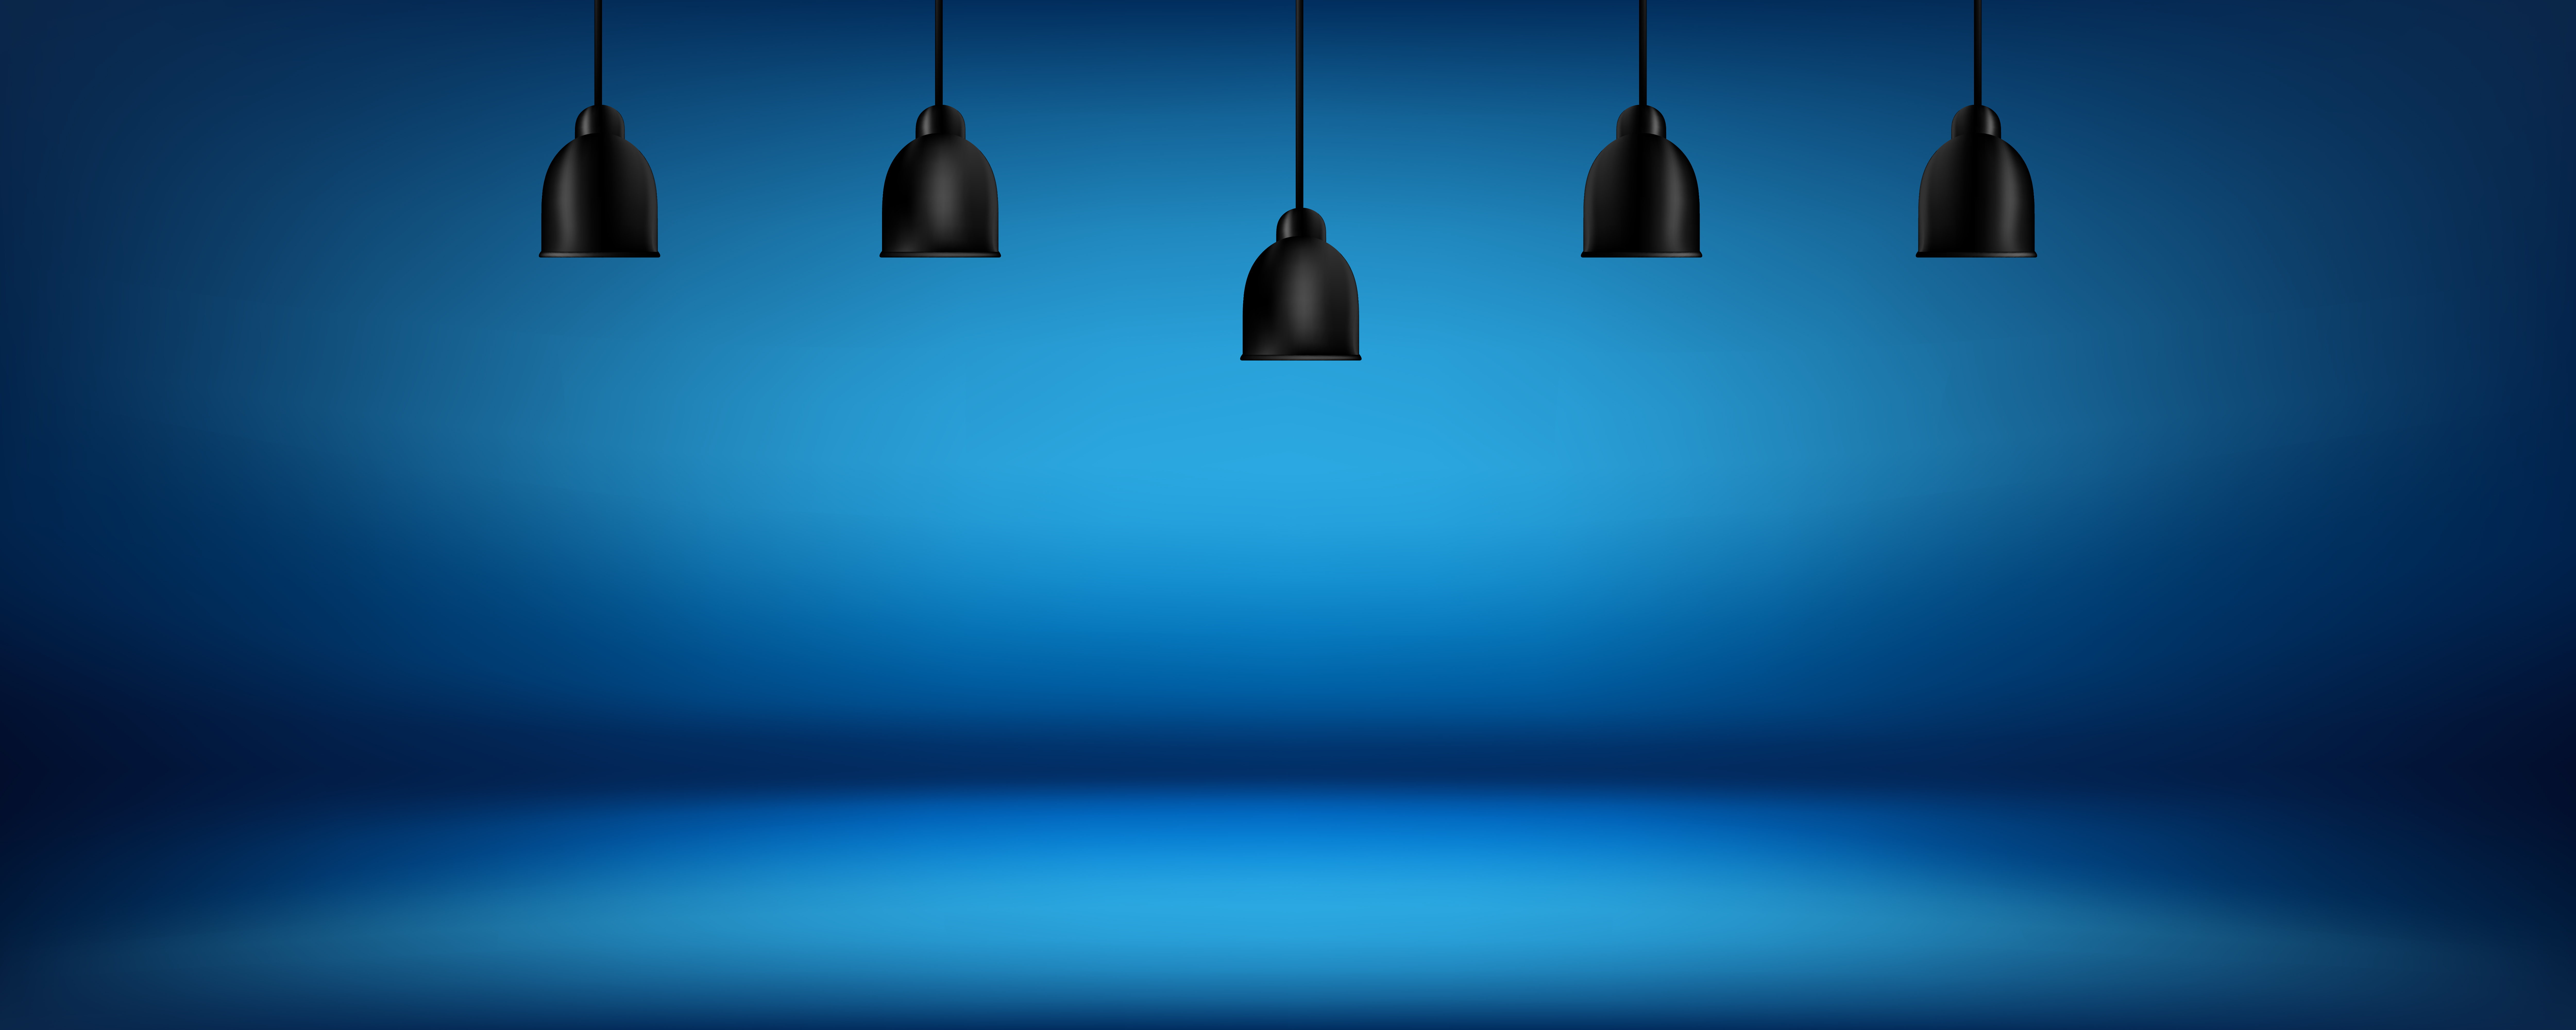 Blue Background With Light Boxes On Ceiling Abstract Gradient Studio And Wall Texture